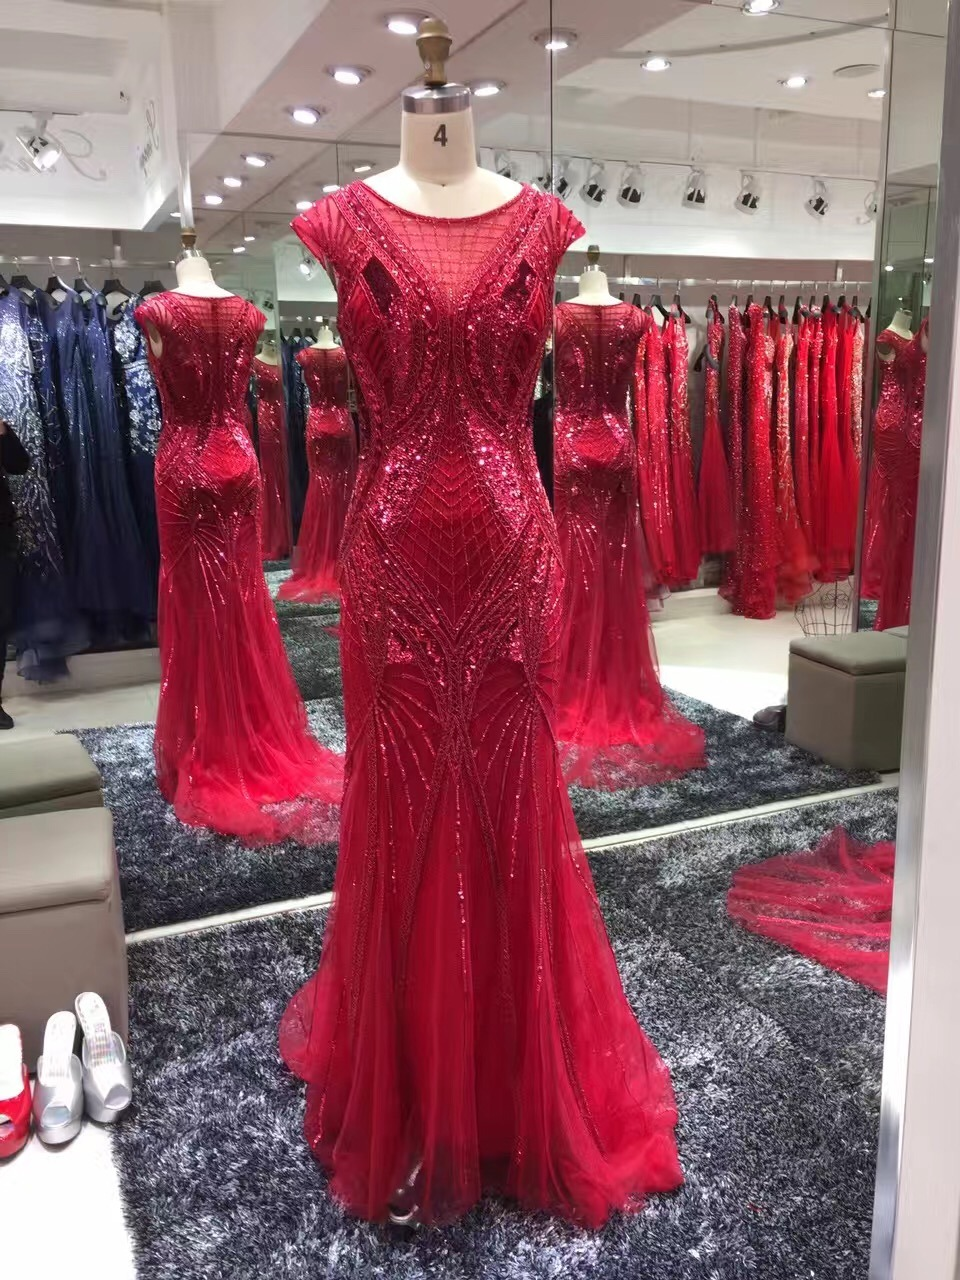 Red Evening Dress, Party Gown, Prom Dress, Fashion Beading Dress